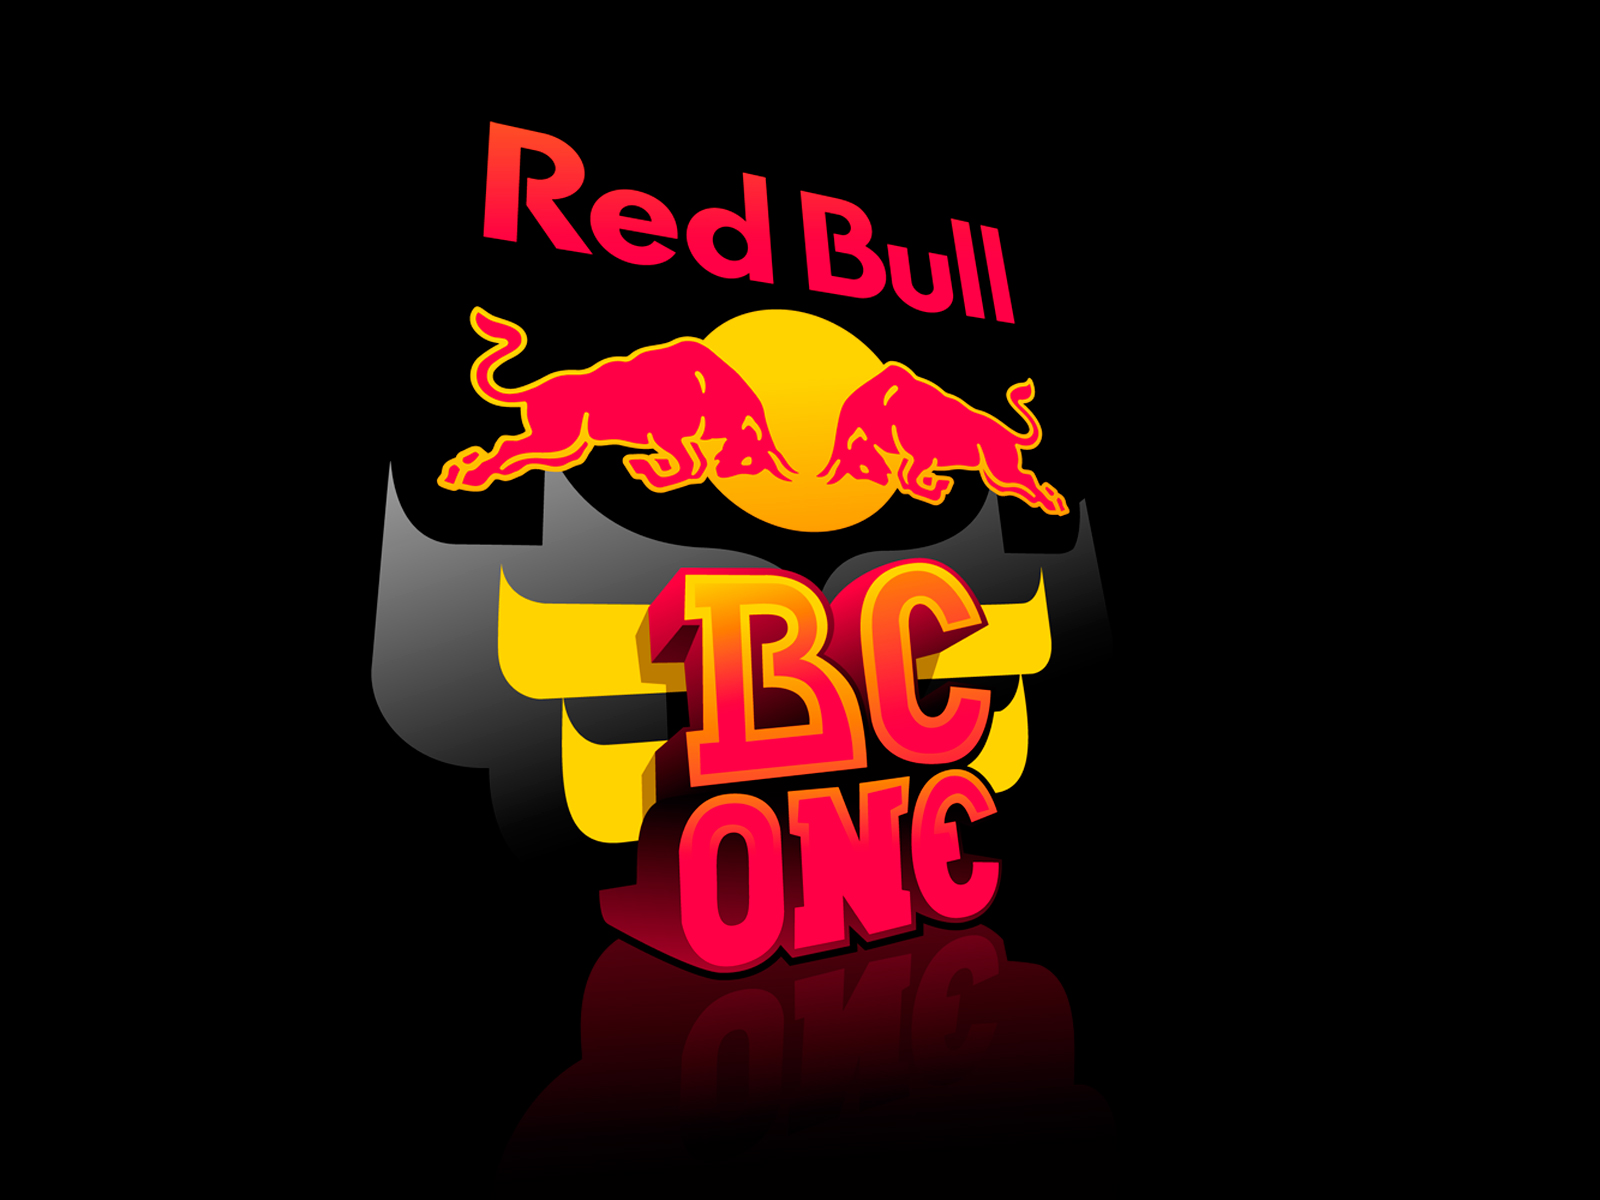 Red Bull Logo 3D Wallpaper